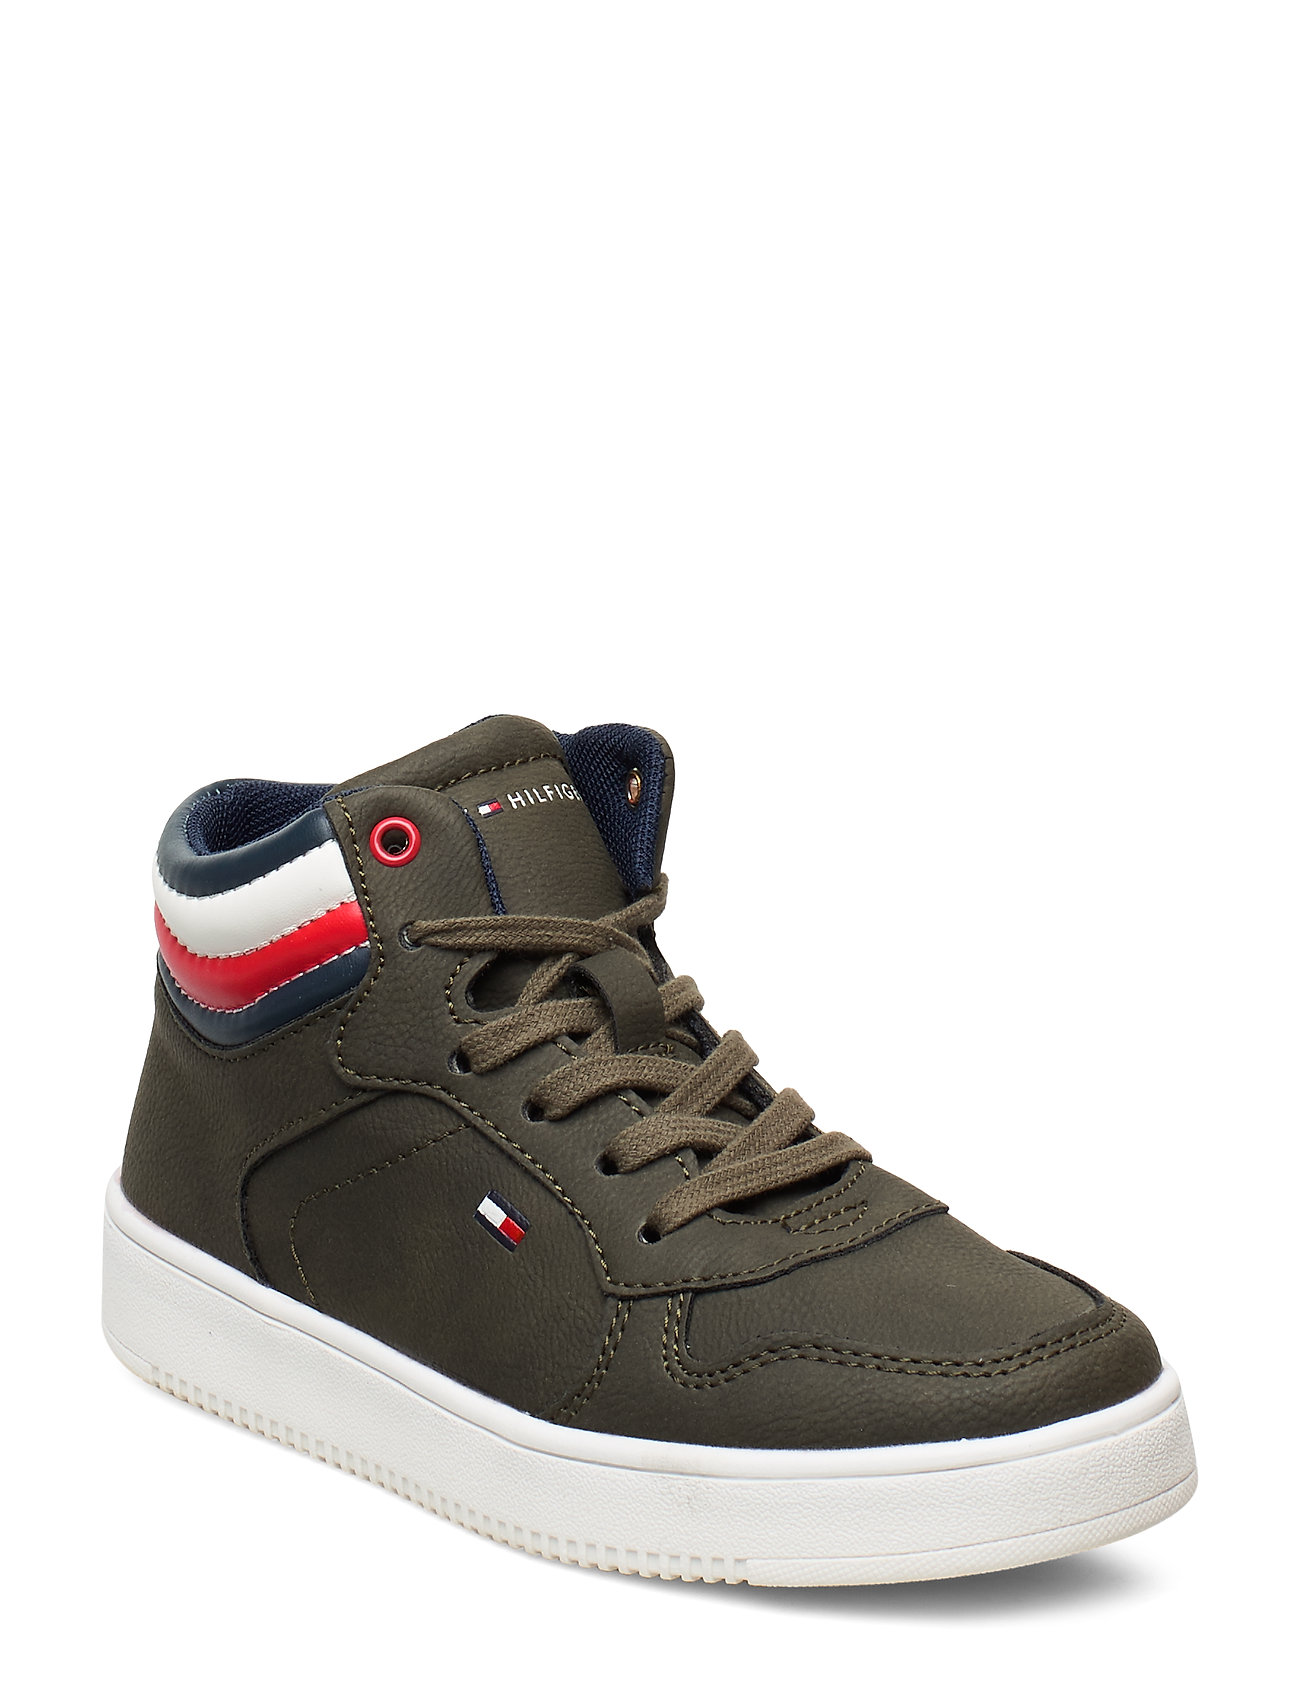 Tommy Hilfiger HIGH TOP LACE-UP - can 402 - VERDE MILITARE